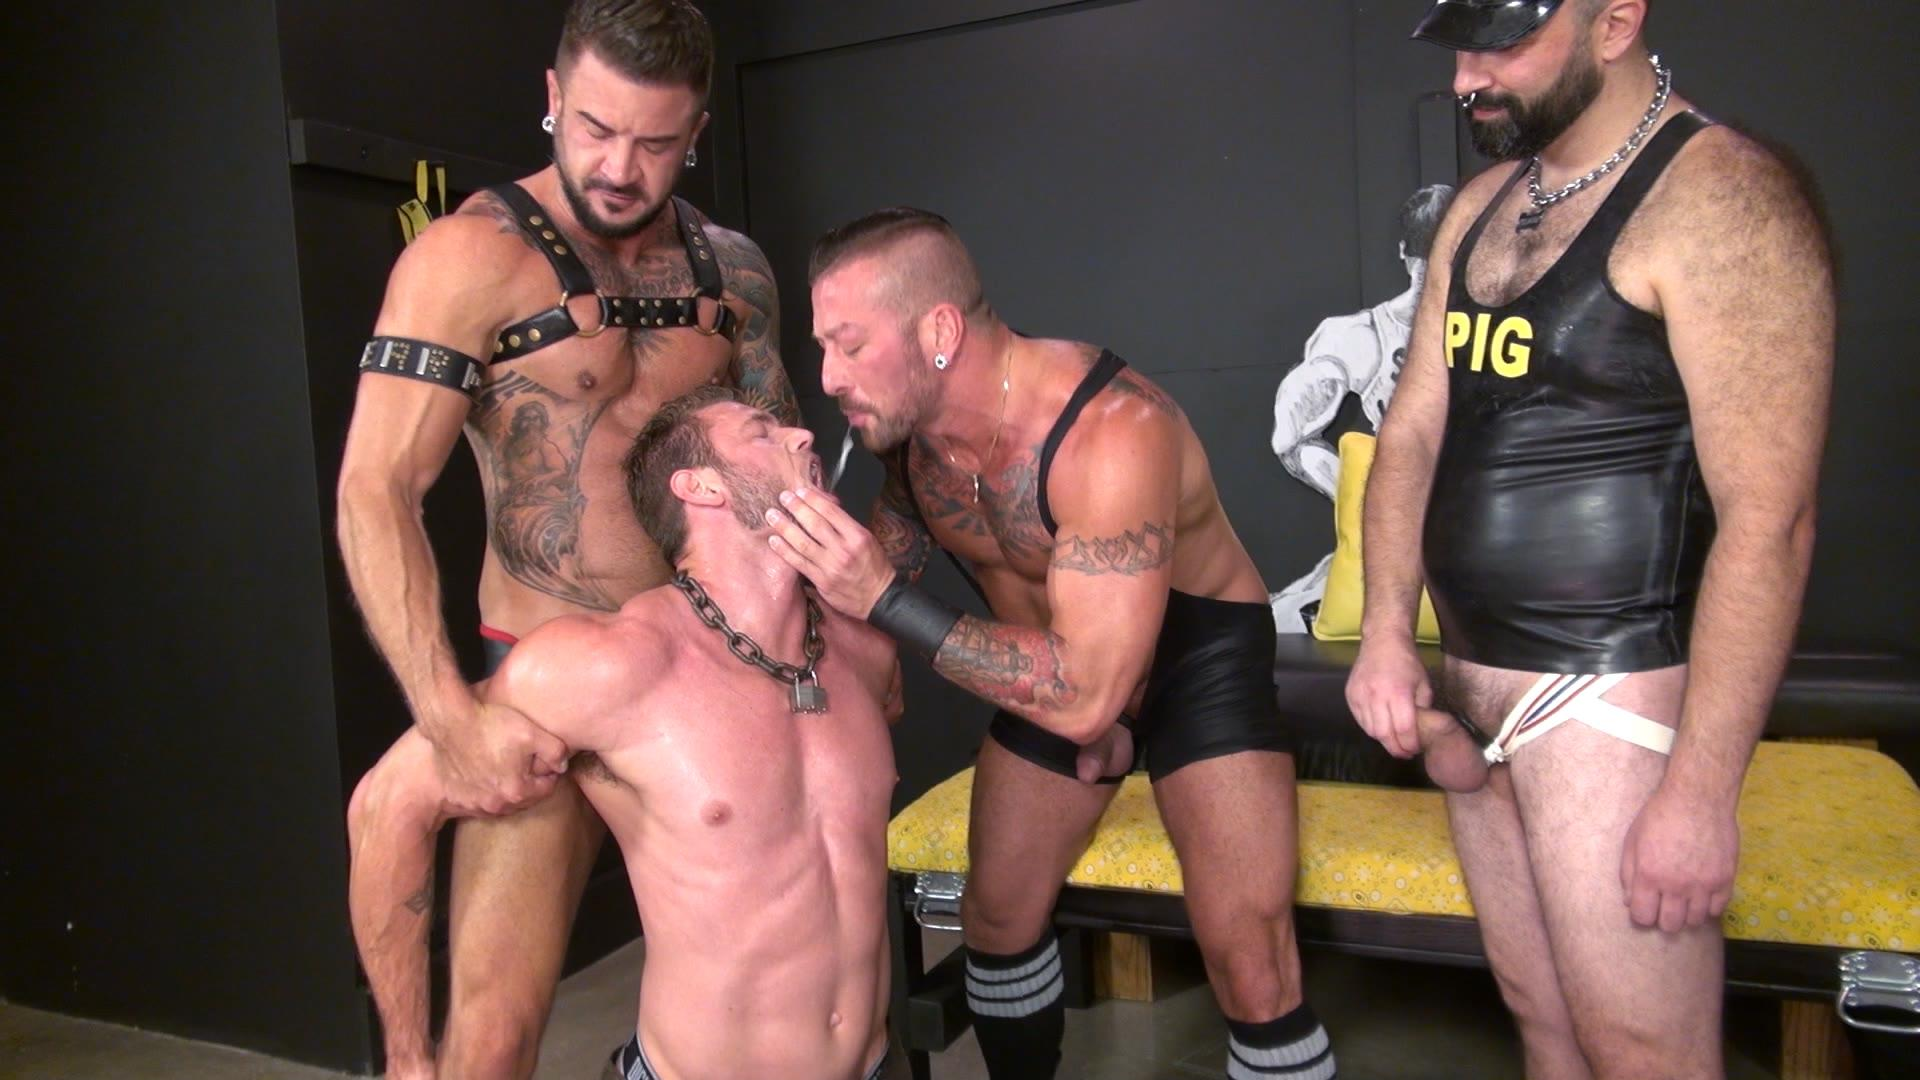 Raw-and-Rough-Boy-Fillmore-Dolf-Dietrich-Damon-Andros-Hugh-Hunter-Ace-Era-Free-Gay-Porn-17 Bareback Fuck And Piss Party At An Underground Sex Club